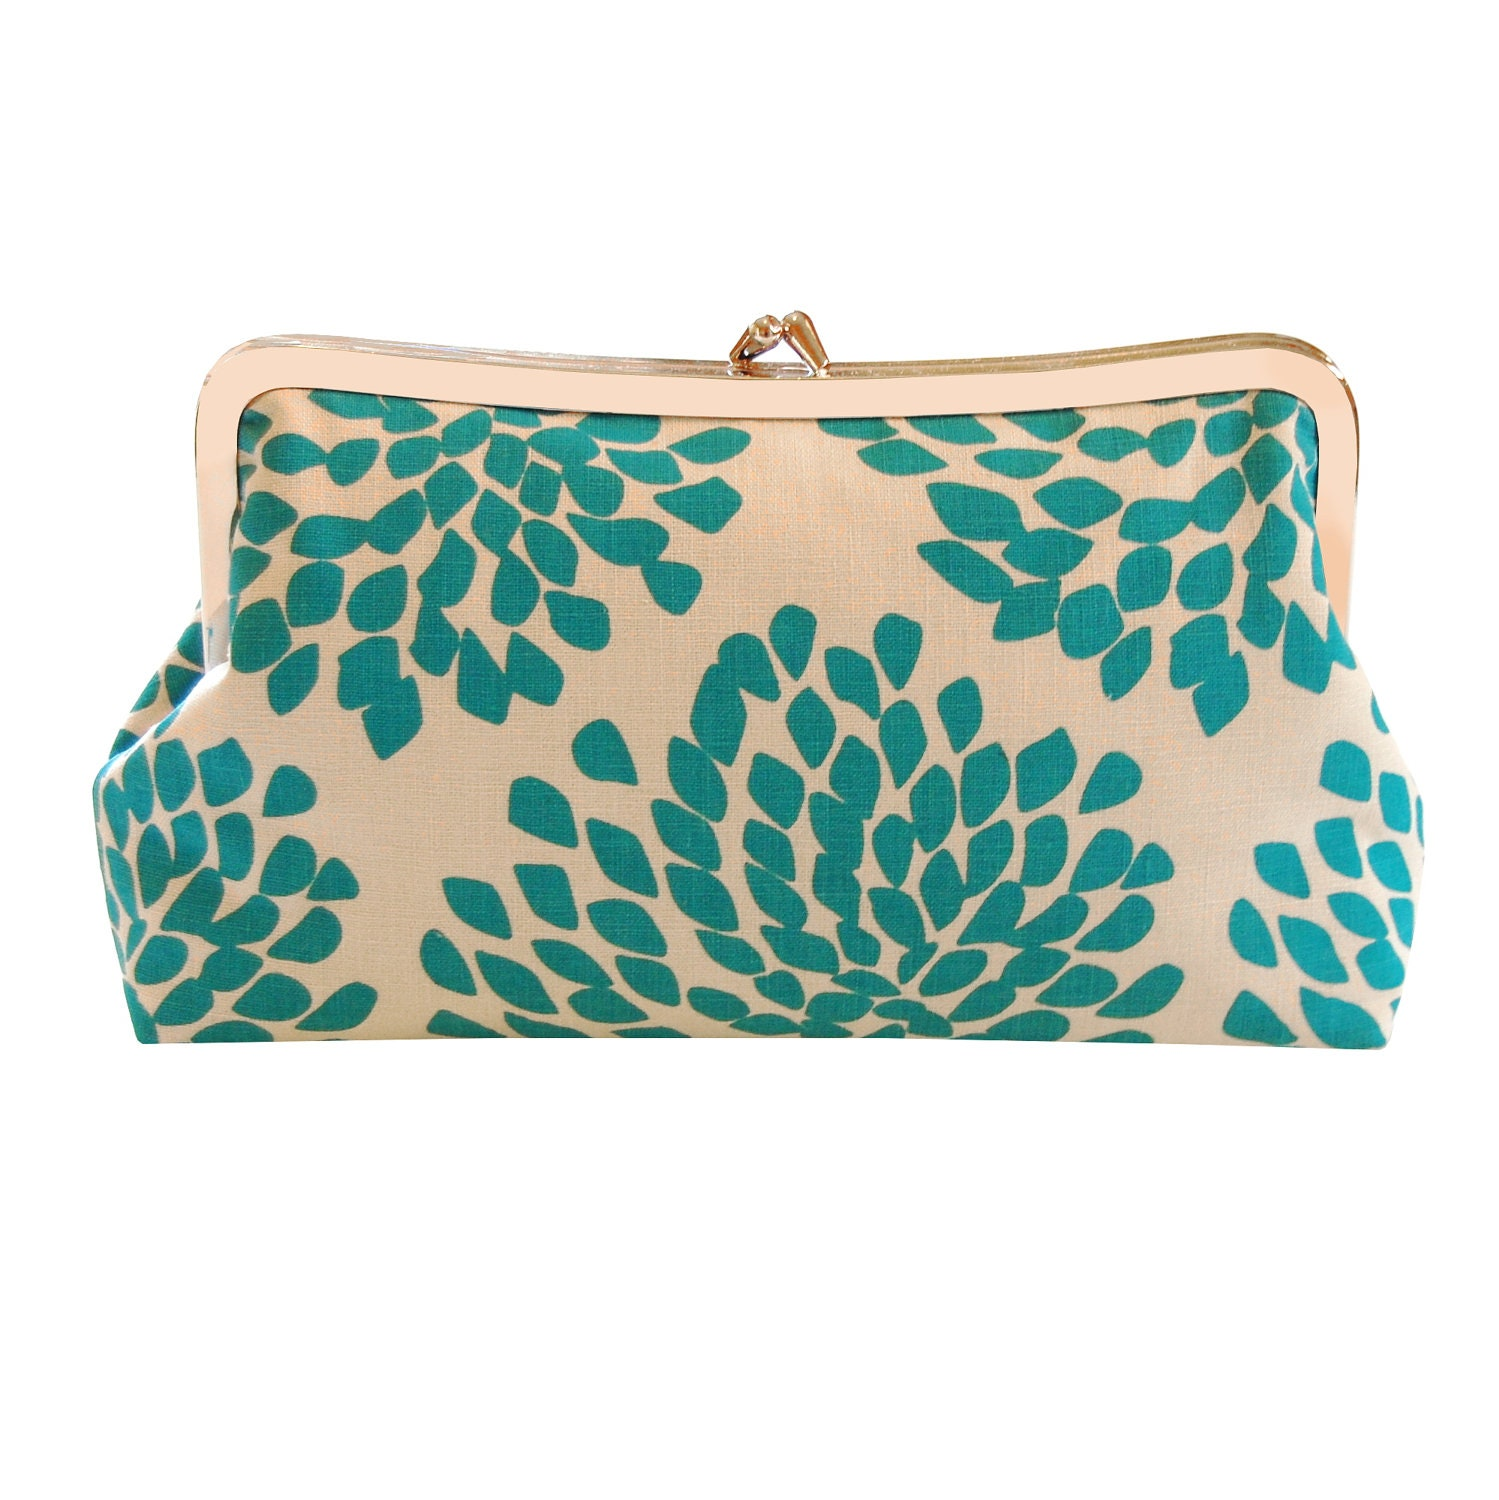 Clutch purse with aqua blossoms screenprint